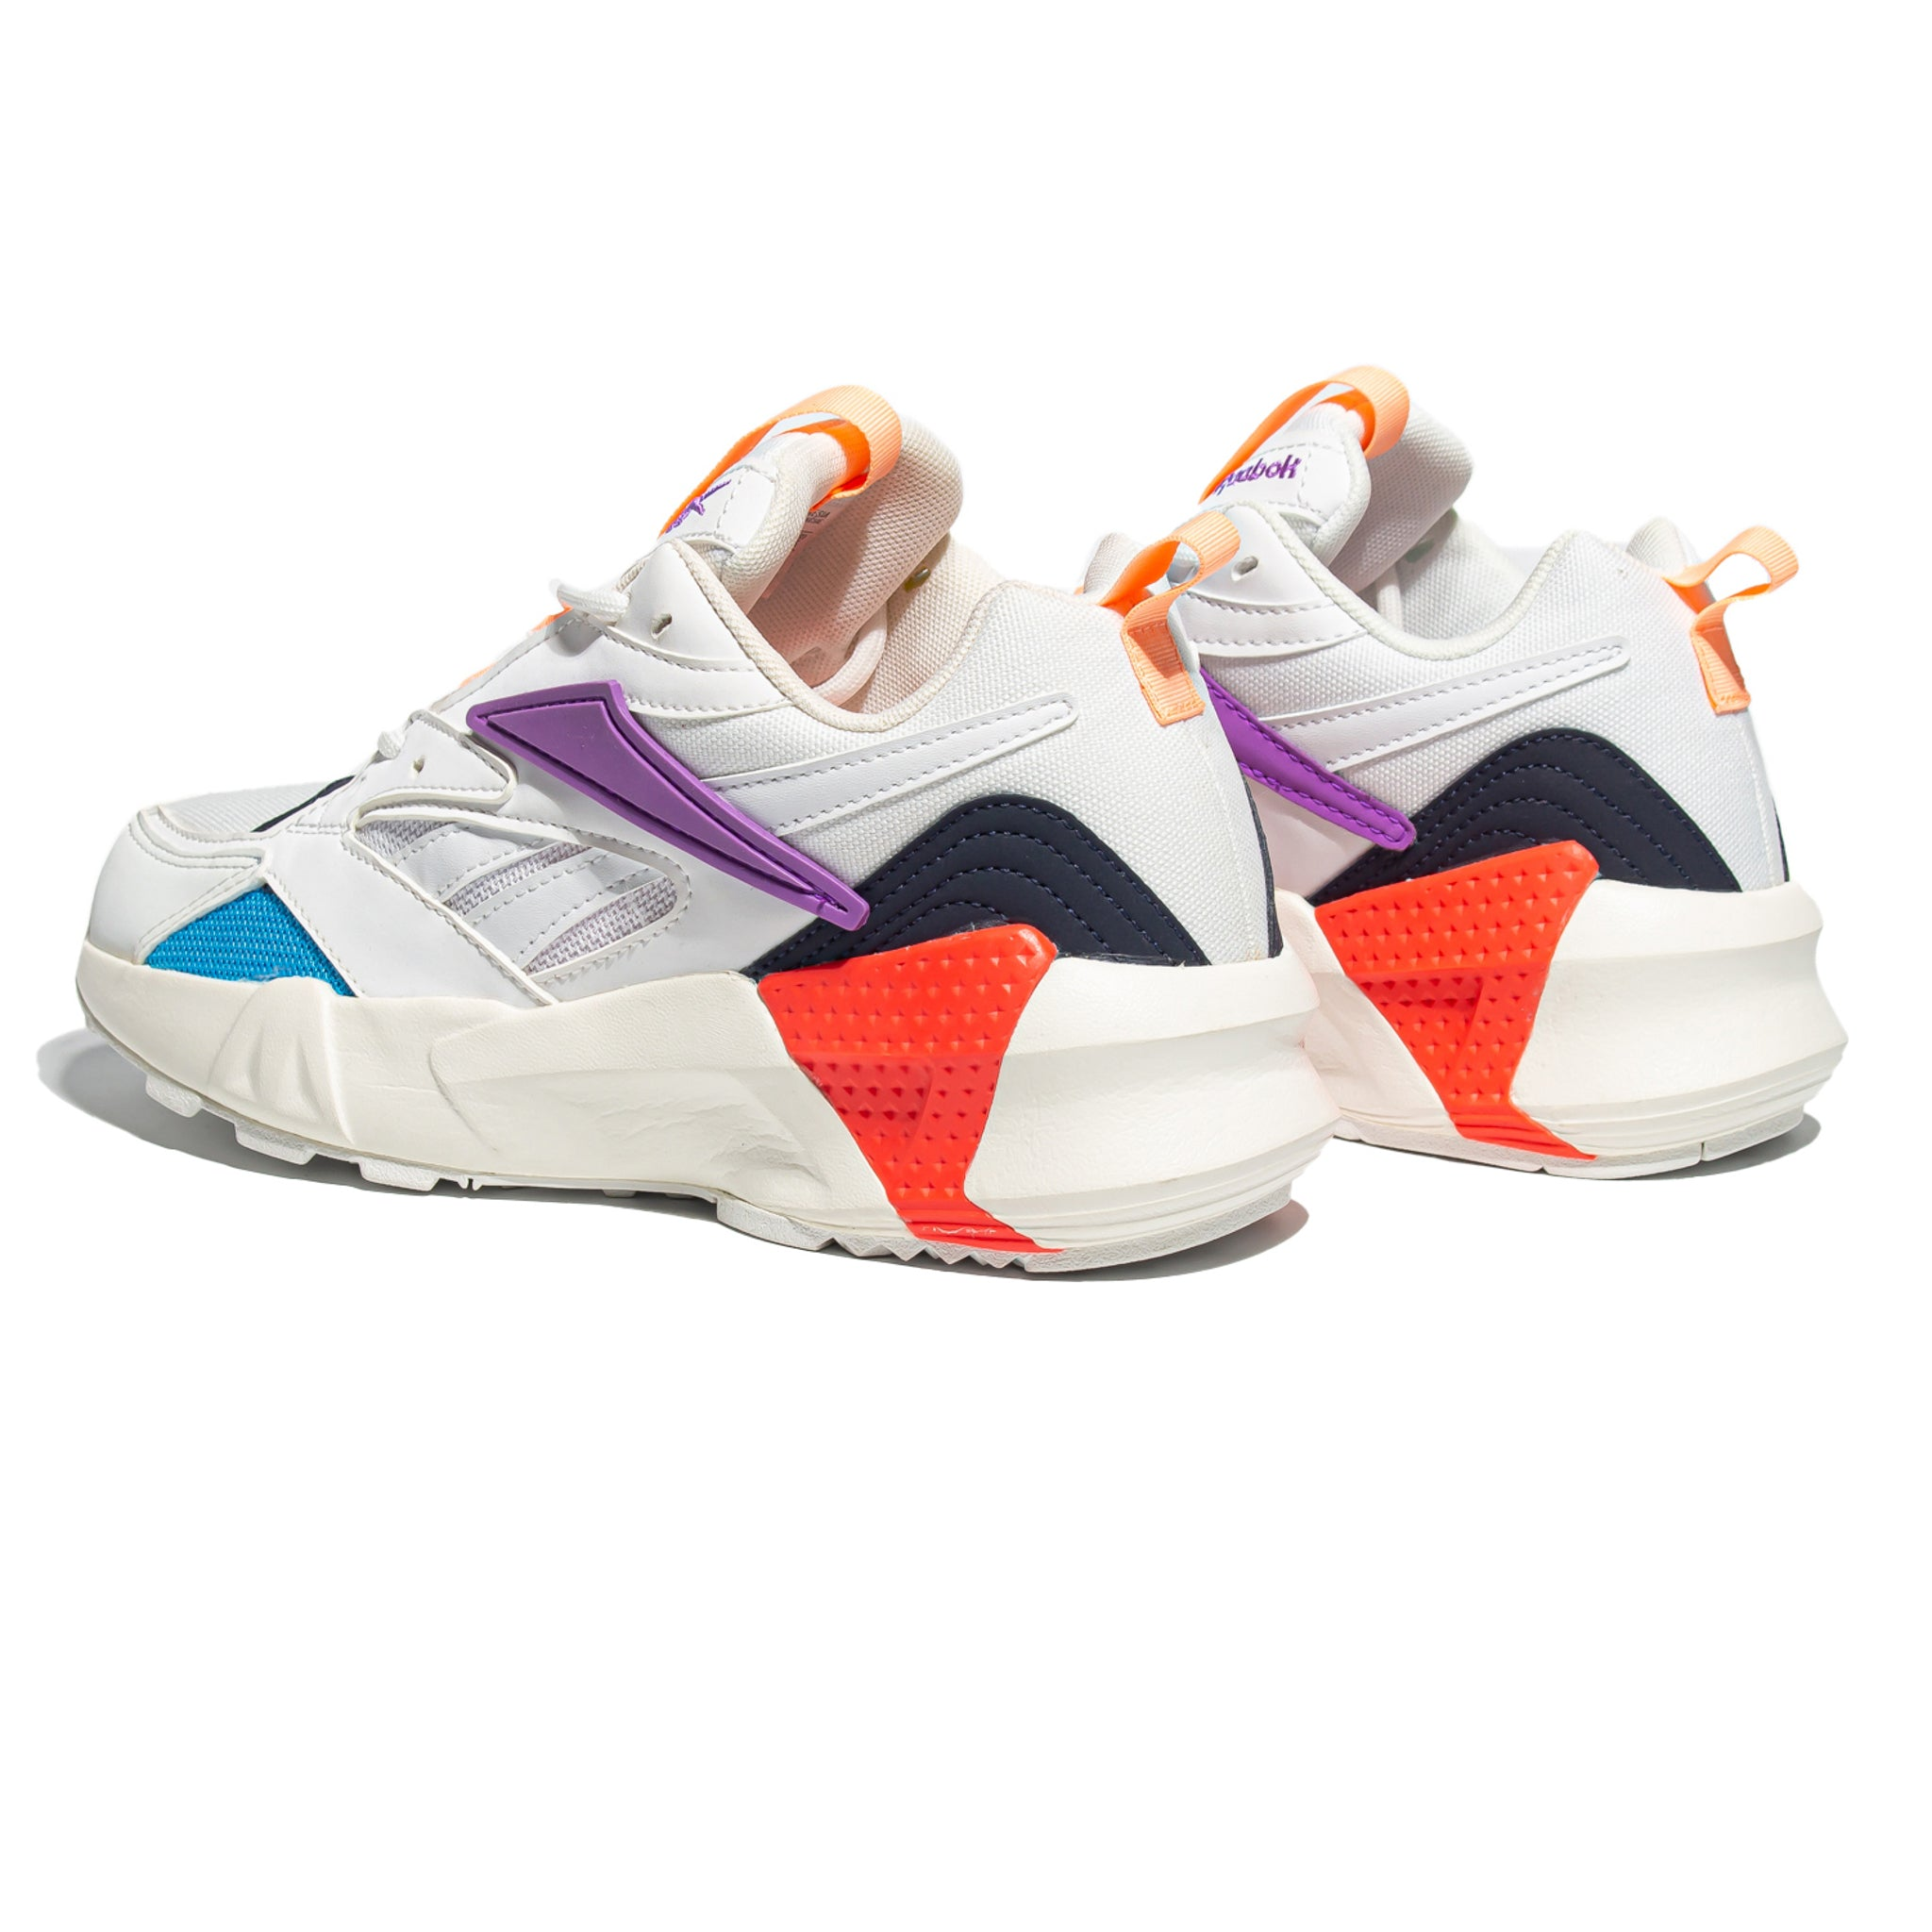 Reebok Aztrek Double NU Pops White/Grape Punch